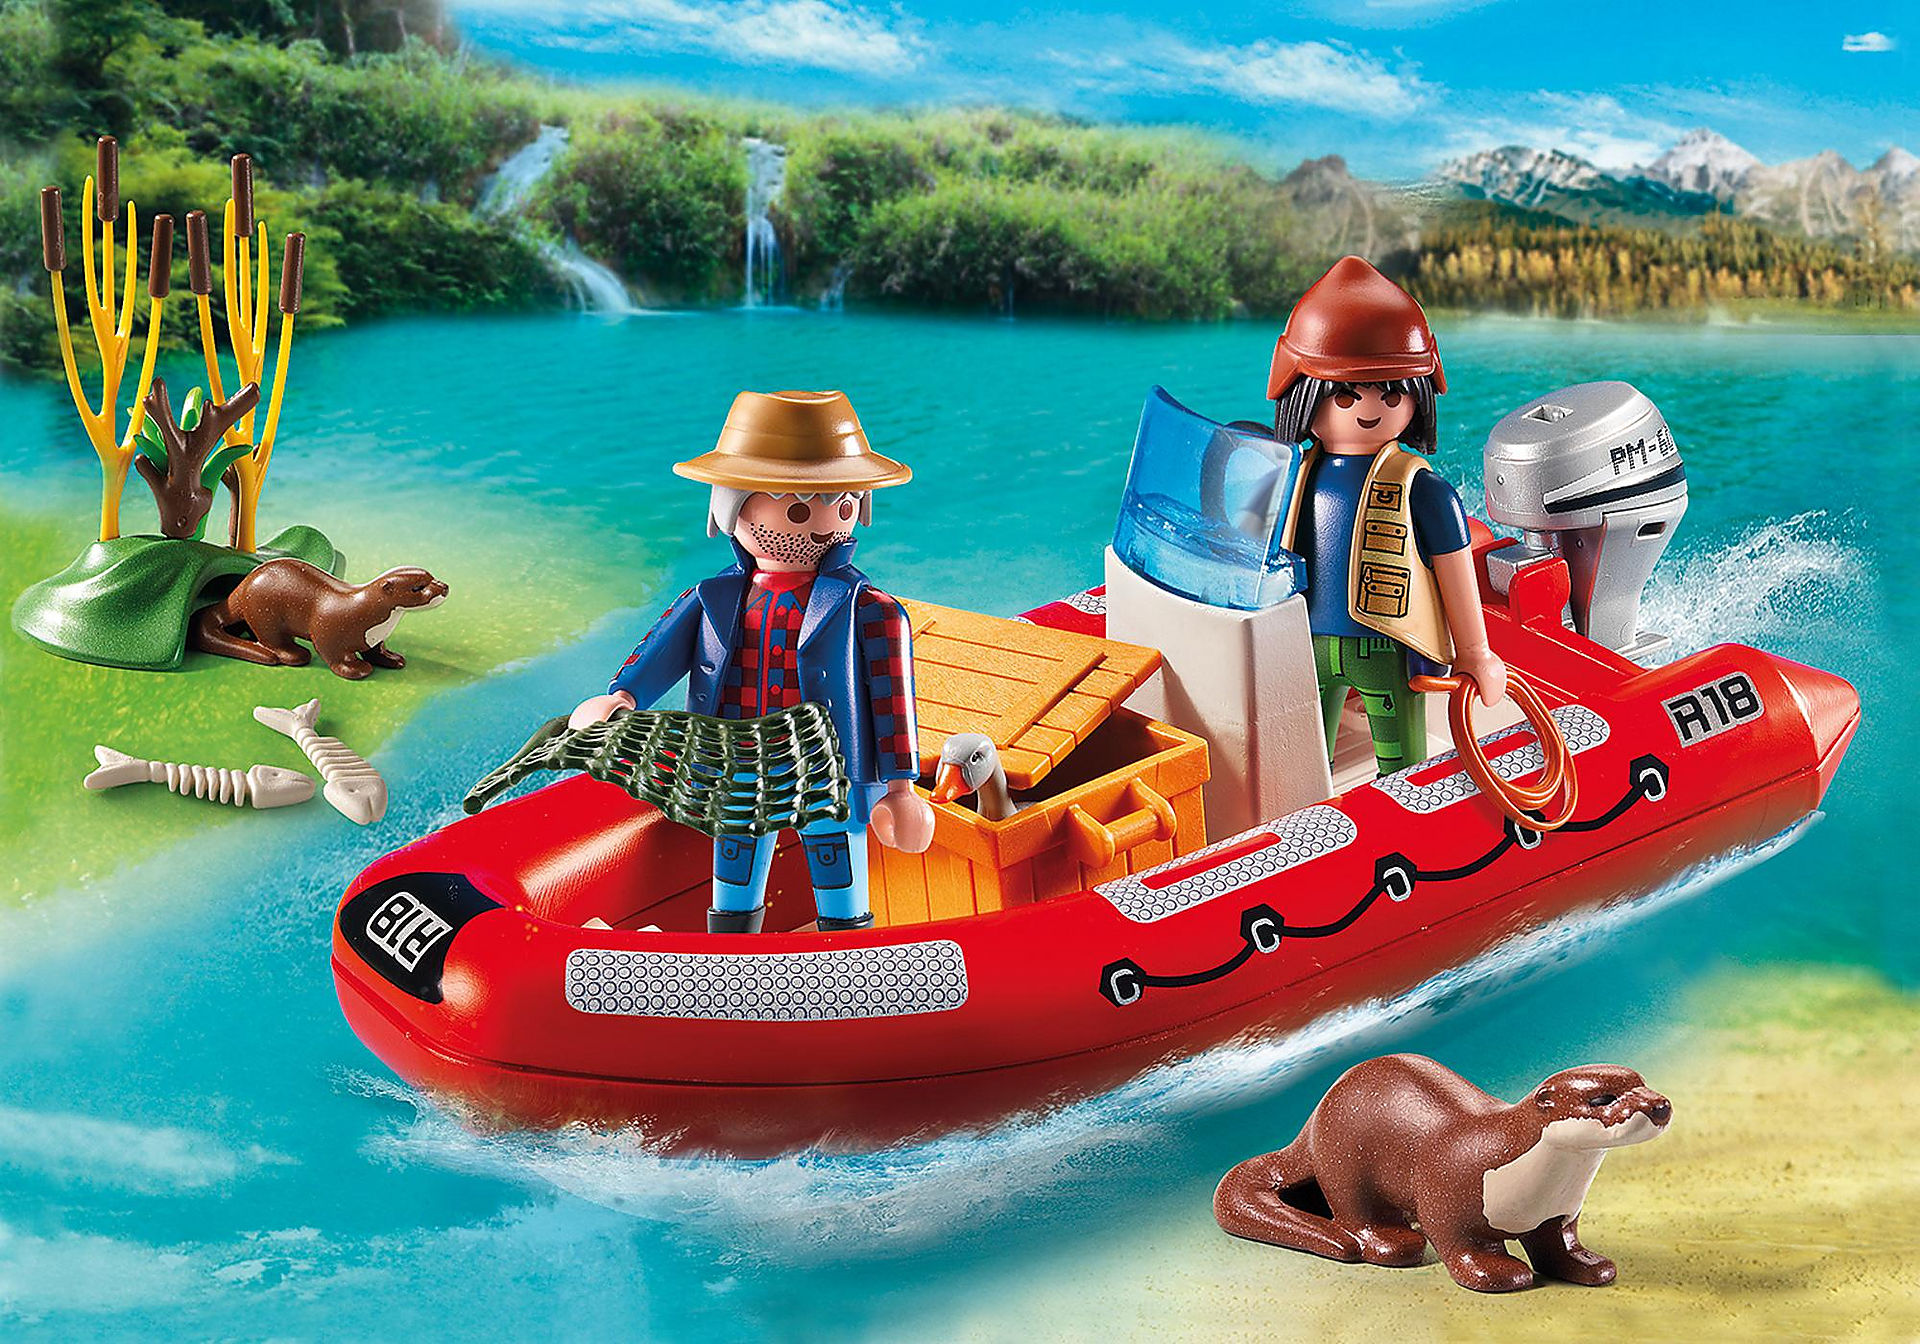 5559 Inflatable Boat with Explorers zoom image1